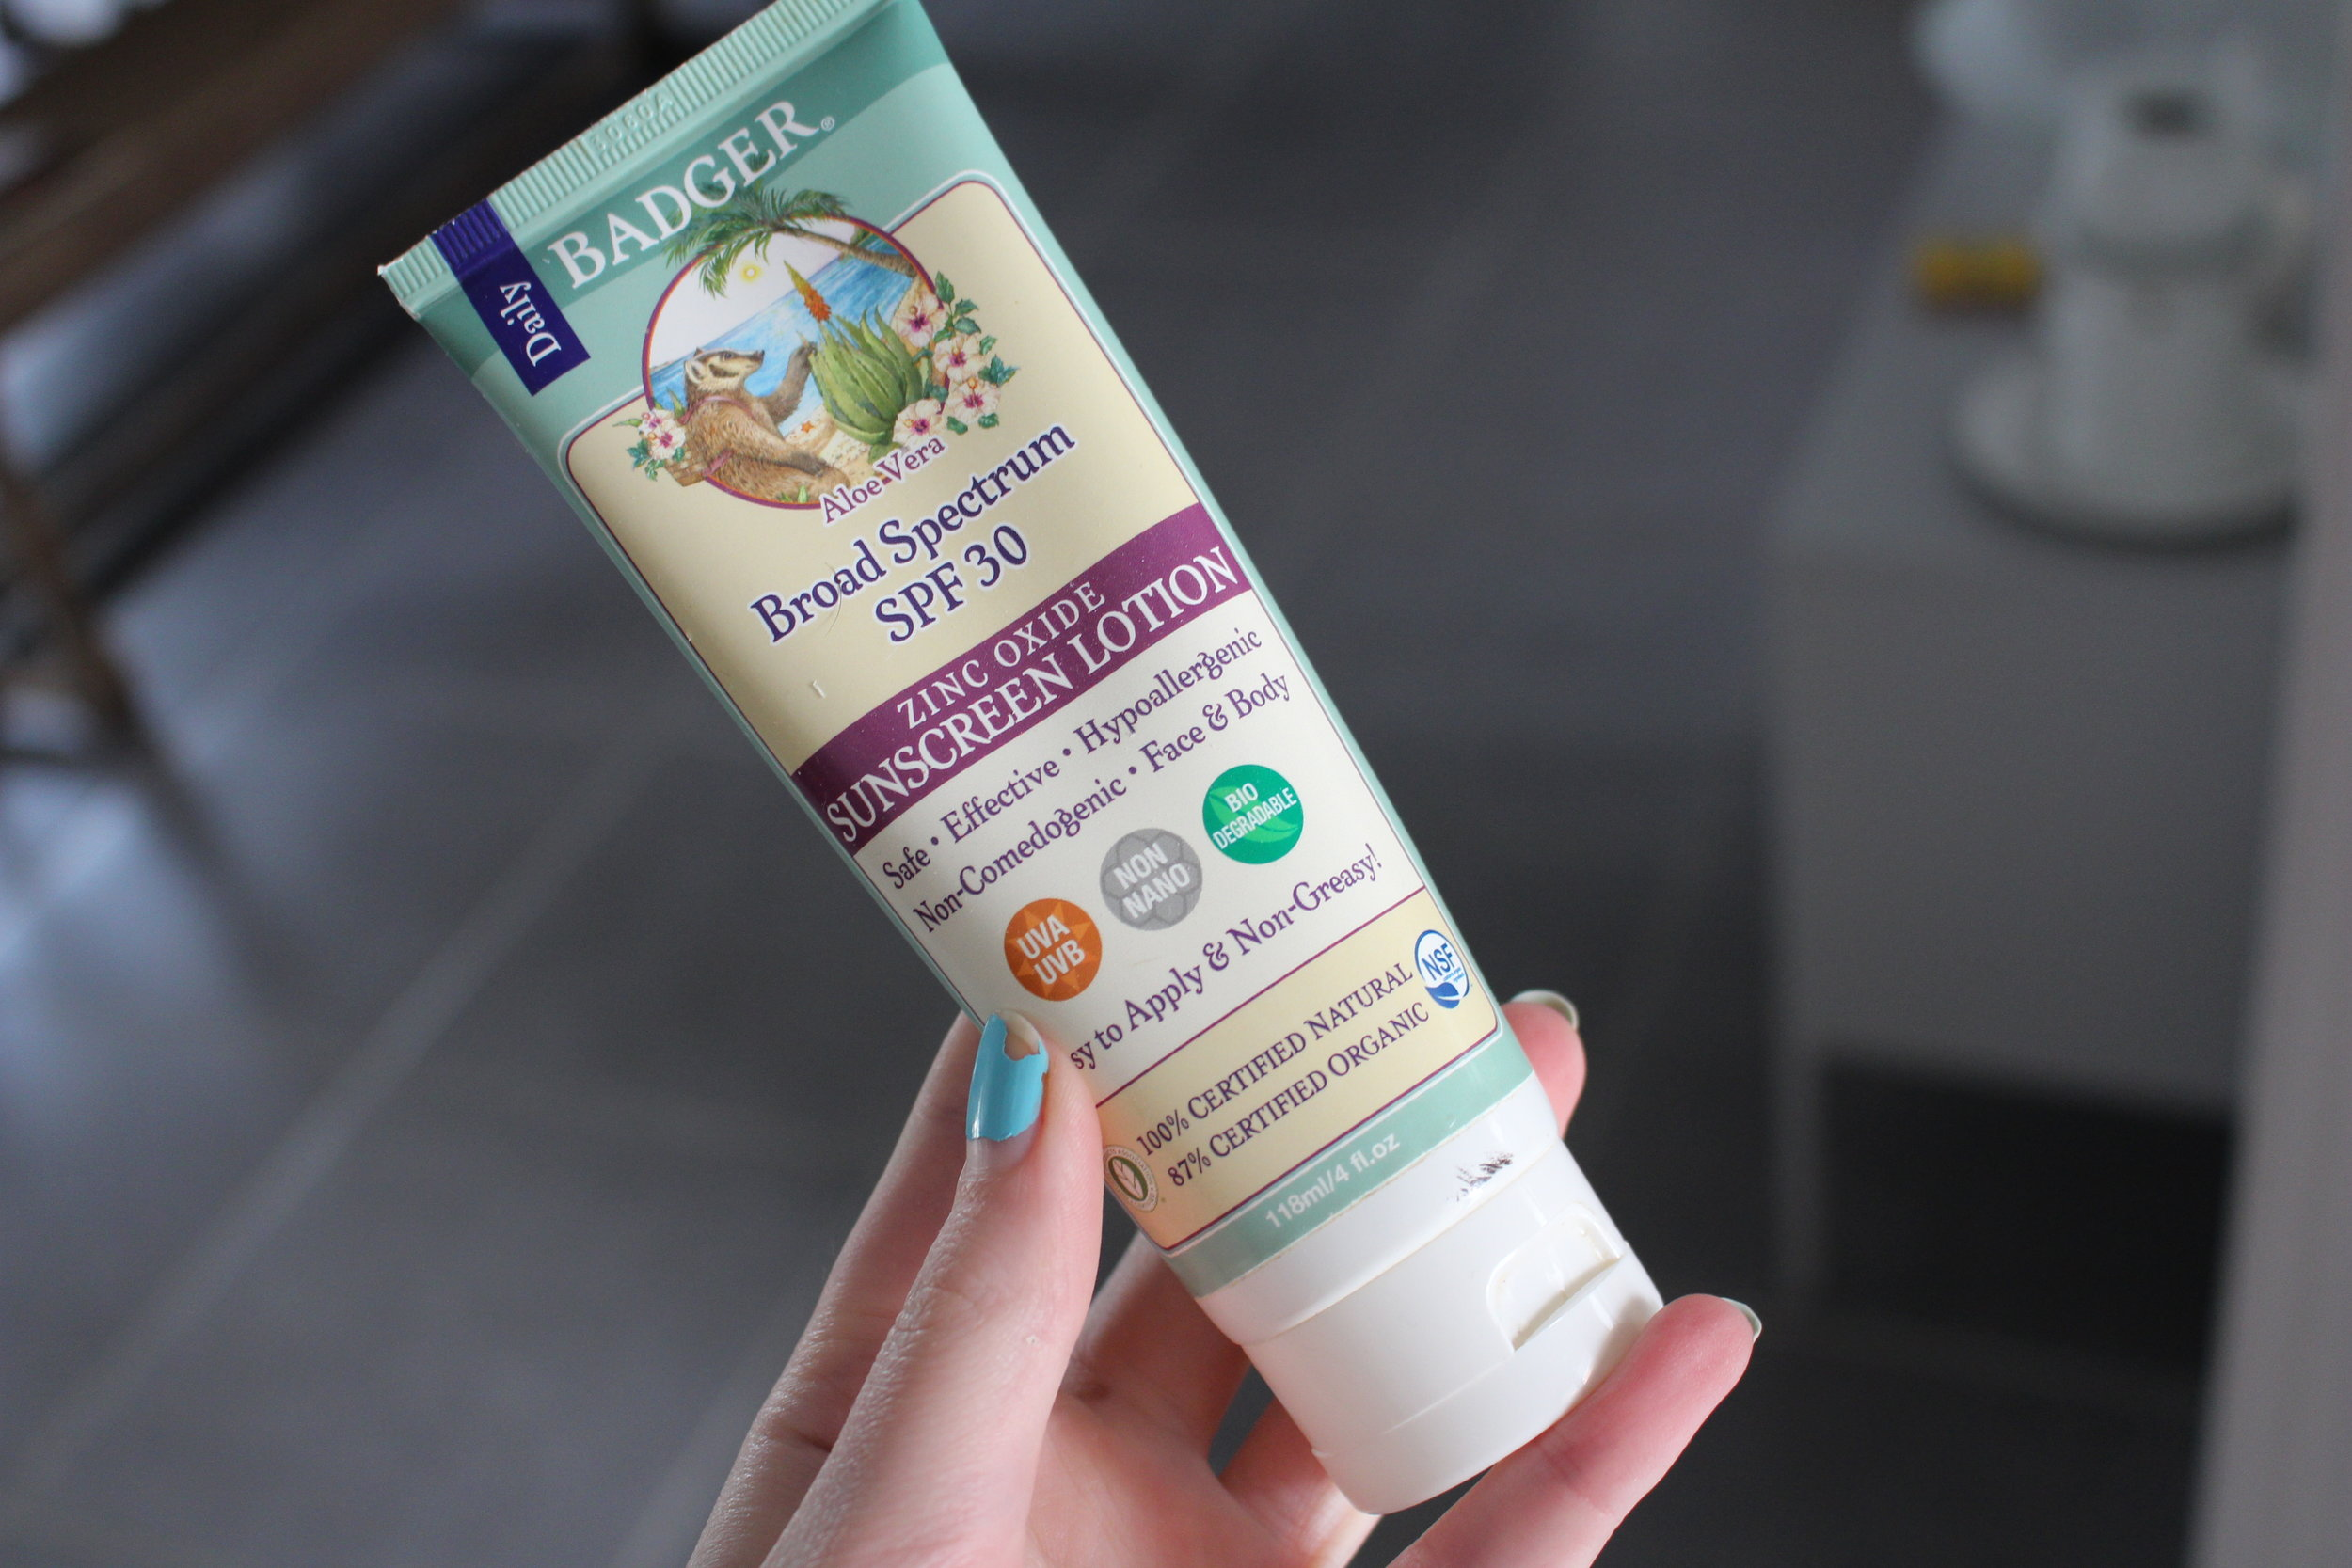 Image: my hand holding my tube of badger sunscreen lotion